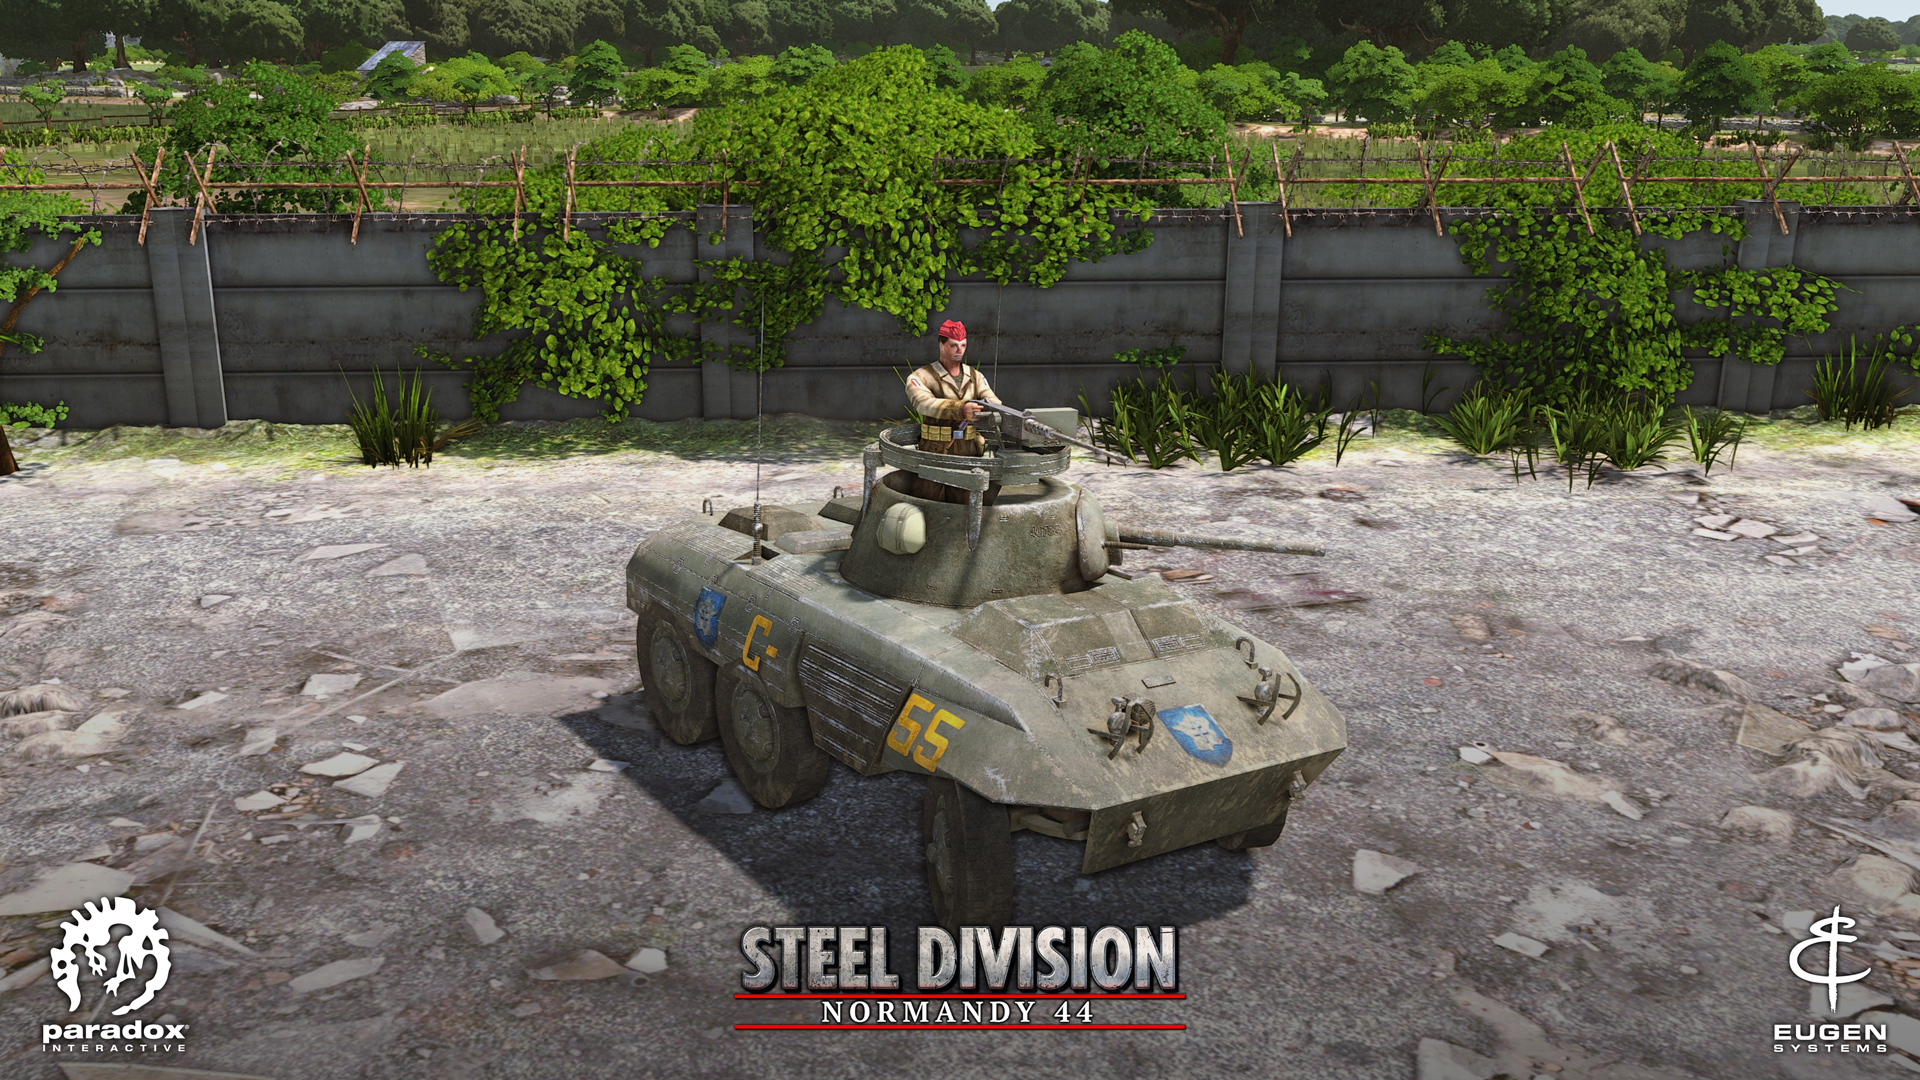 Steel Division: Normandy 44 AM-M8